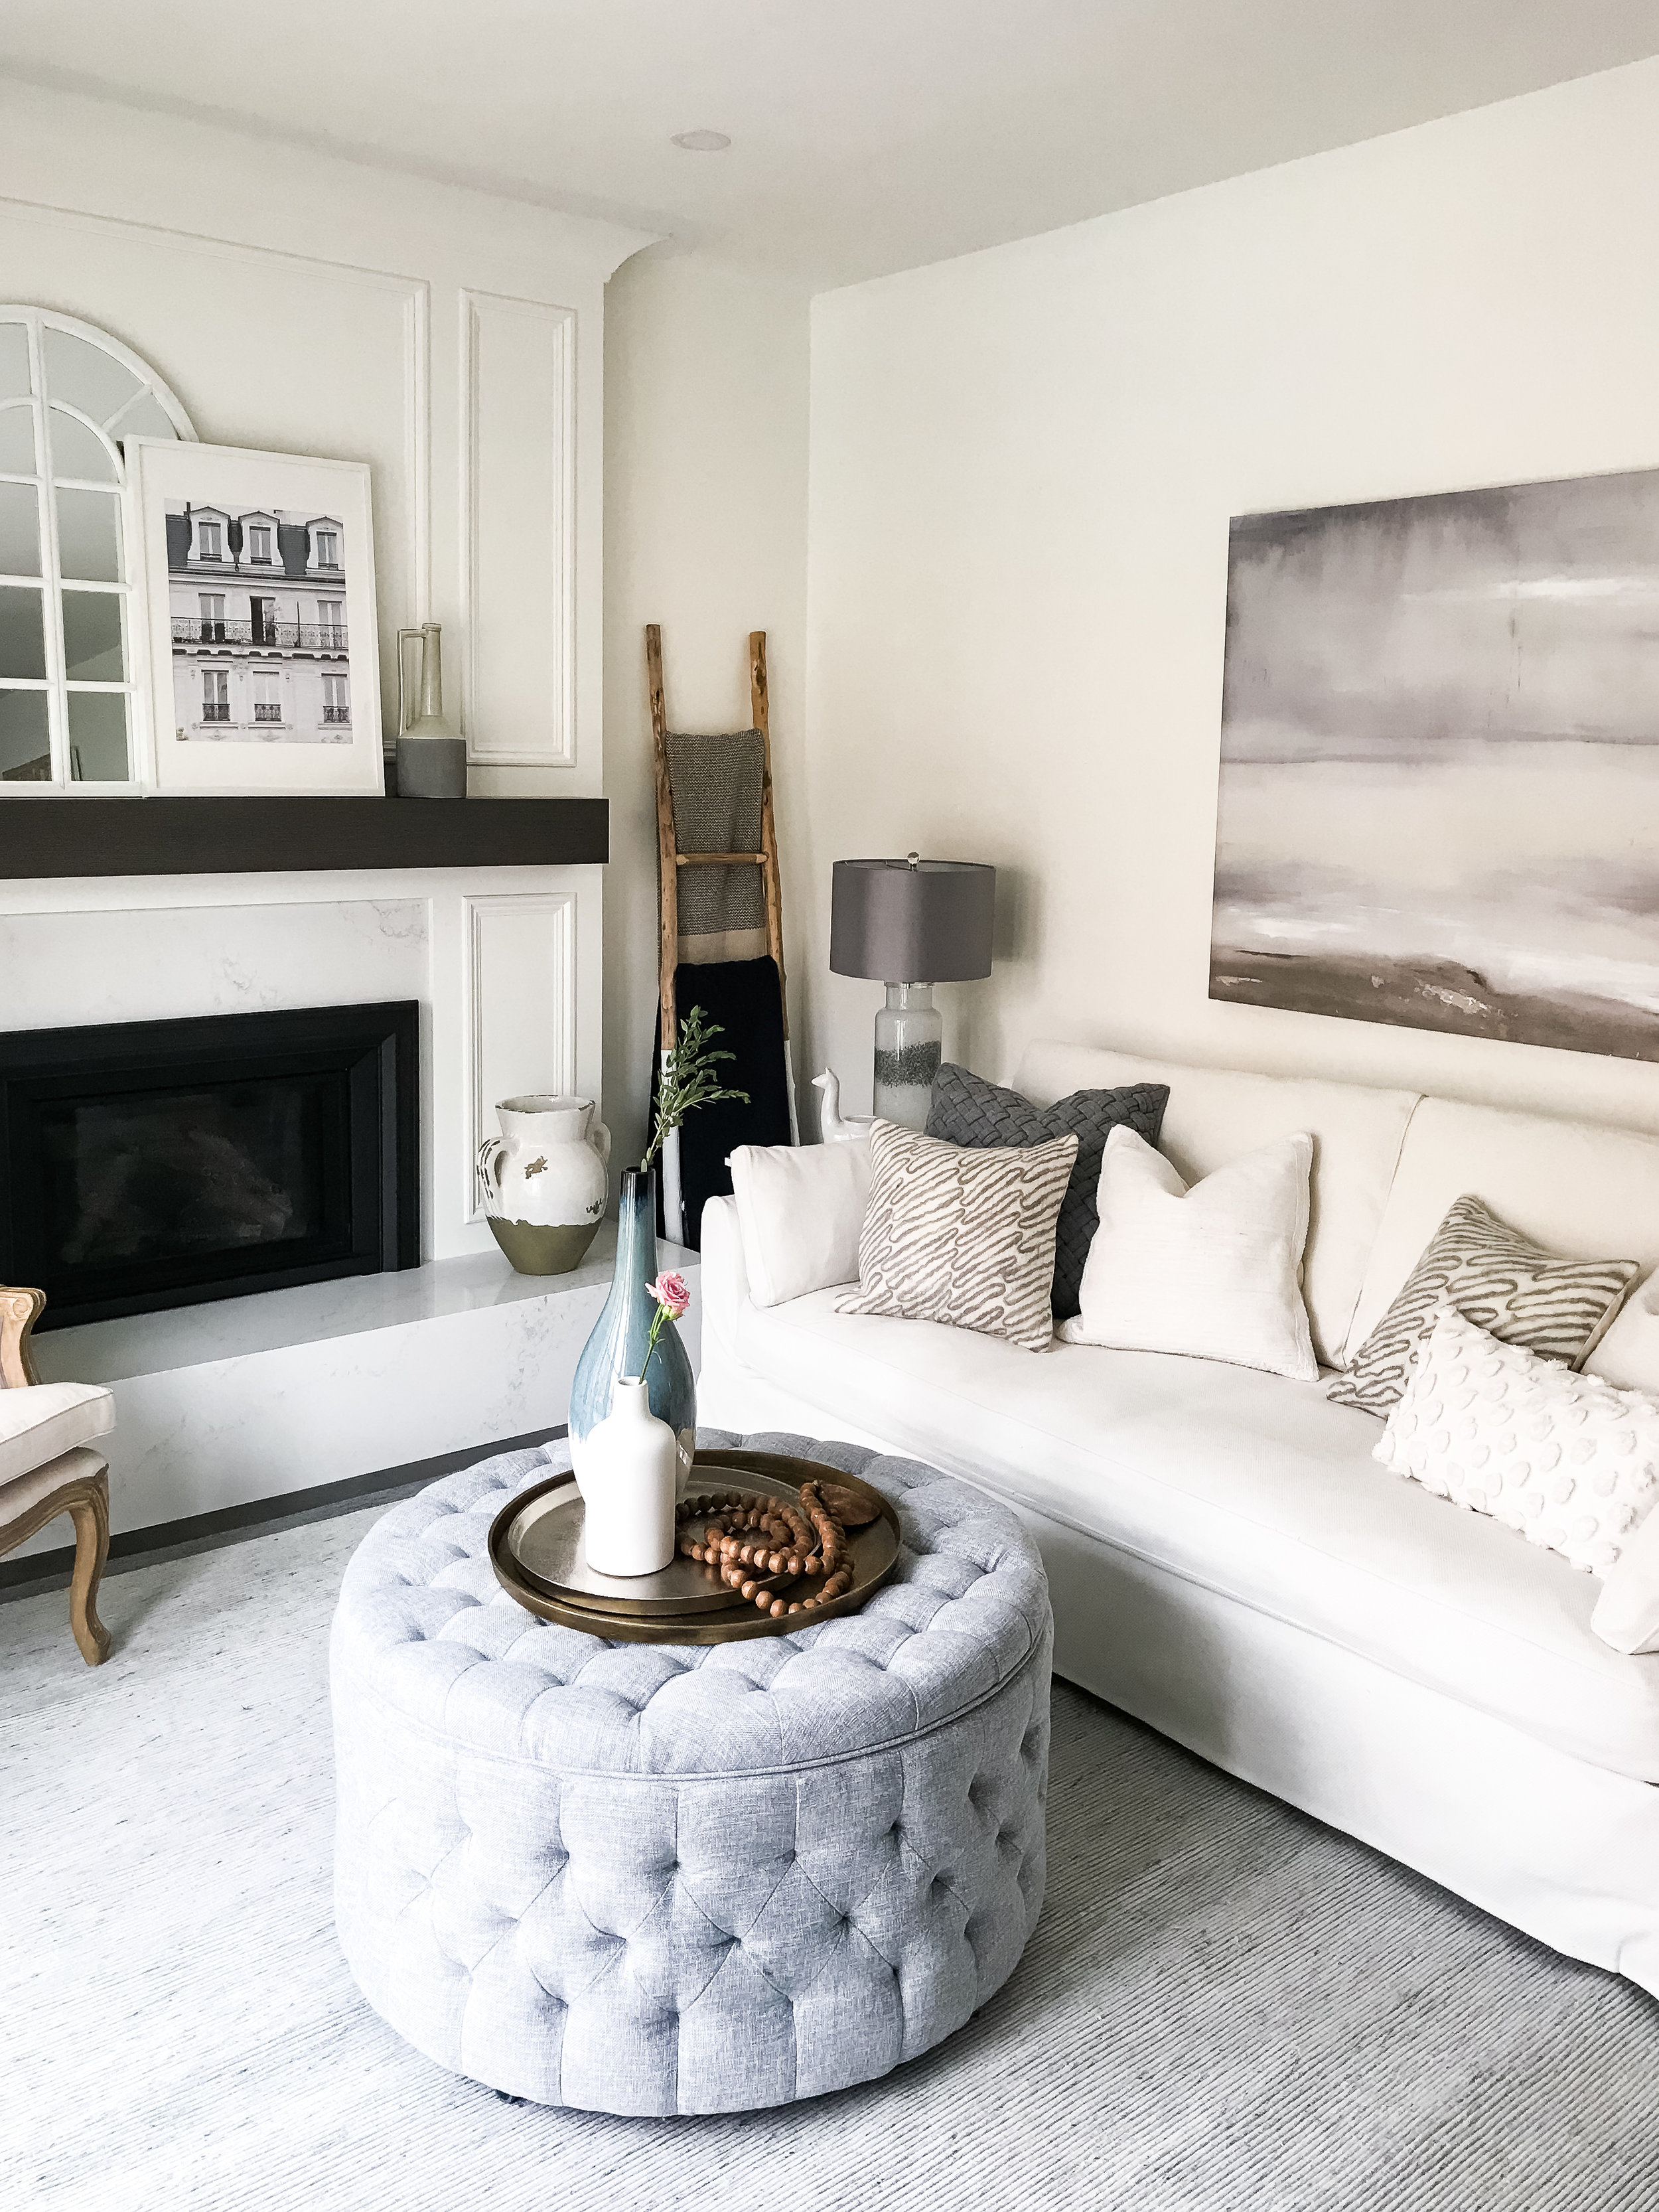 Calgary Interior Designer, Nyla Free Designs, Property Brothers, Buying and Selling, Before and After, Calgary Episodes